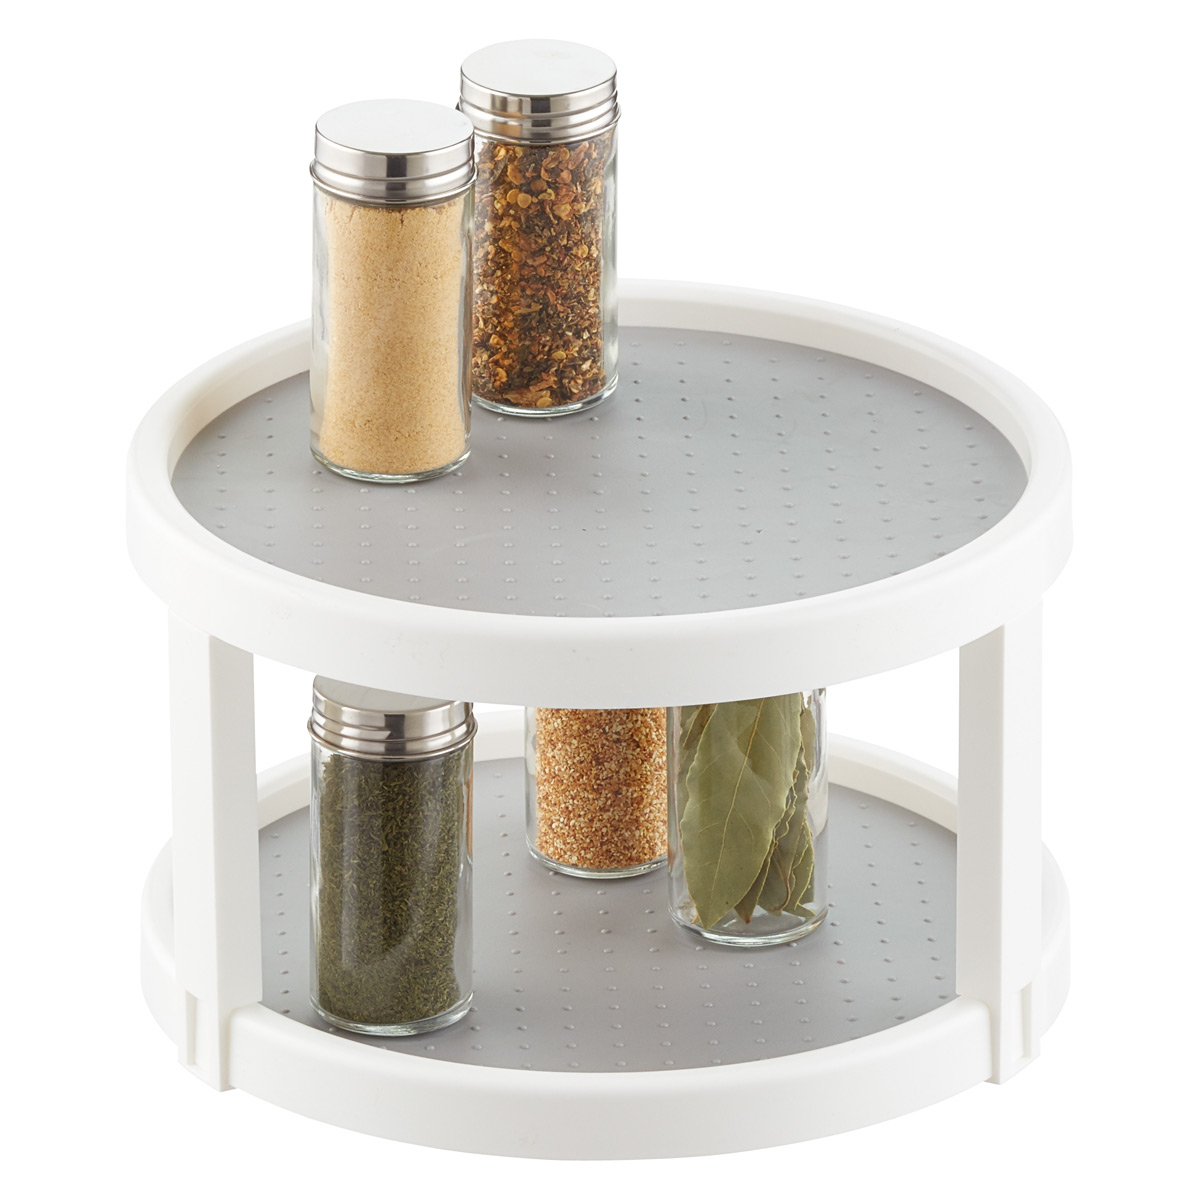 madesmart 2tier white lazy susan